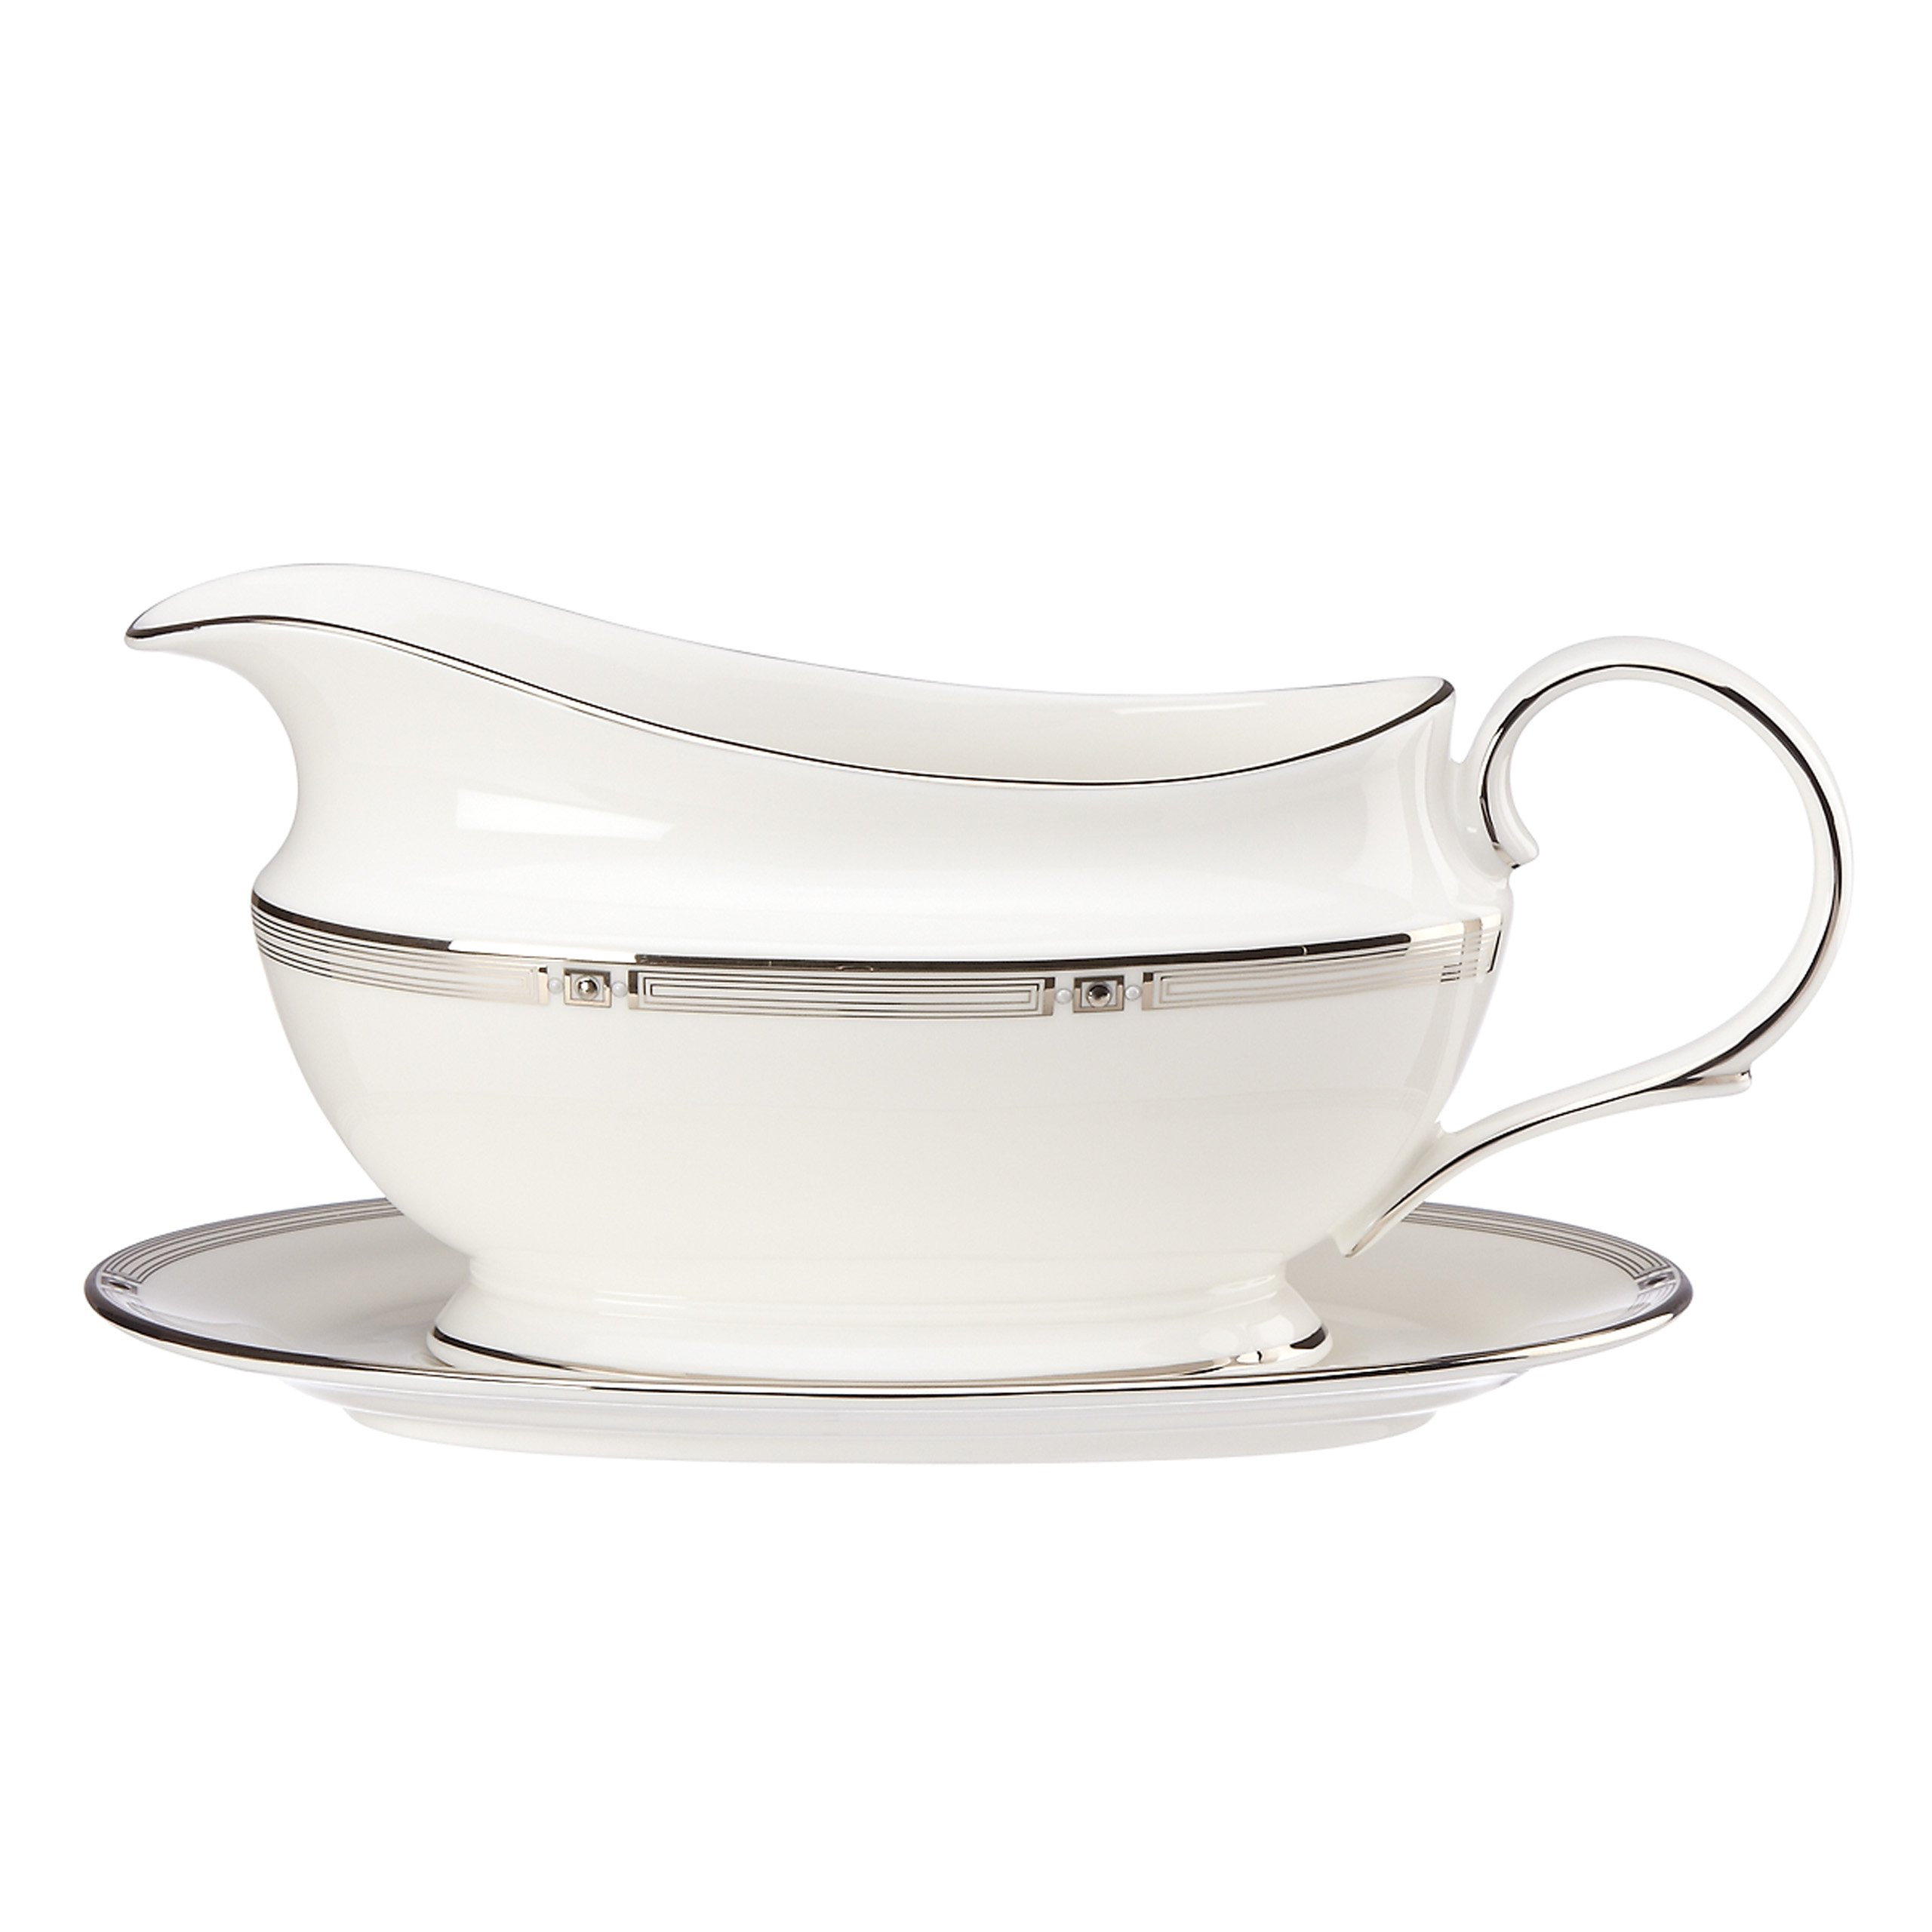 Lenox Westerly Platinum Sauce Boat and Stand, White